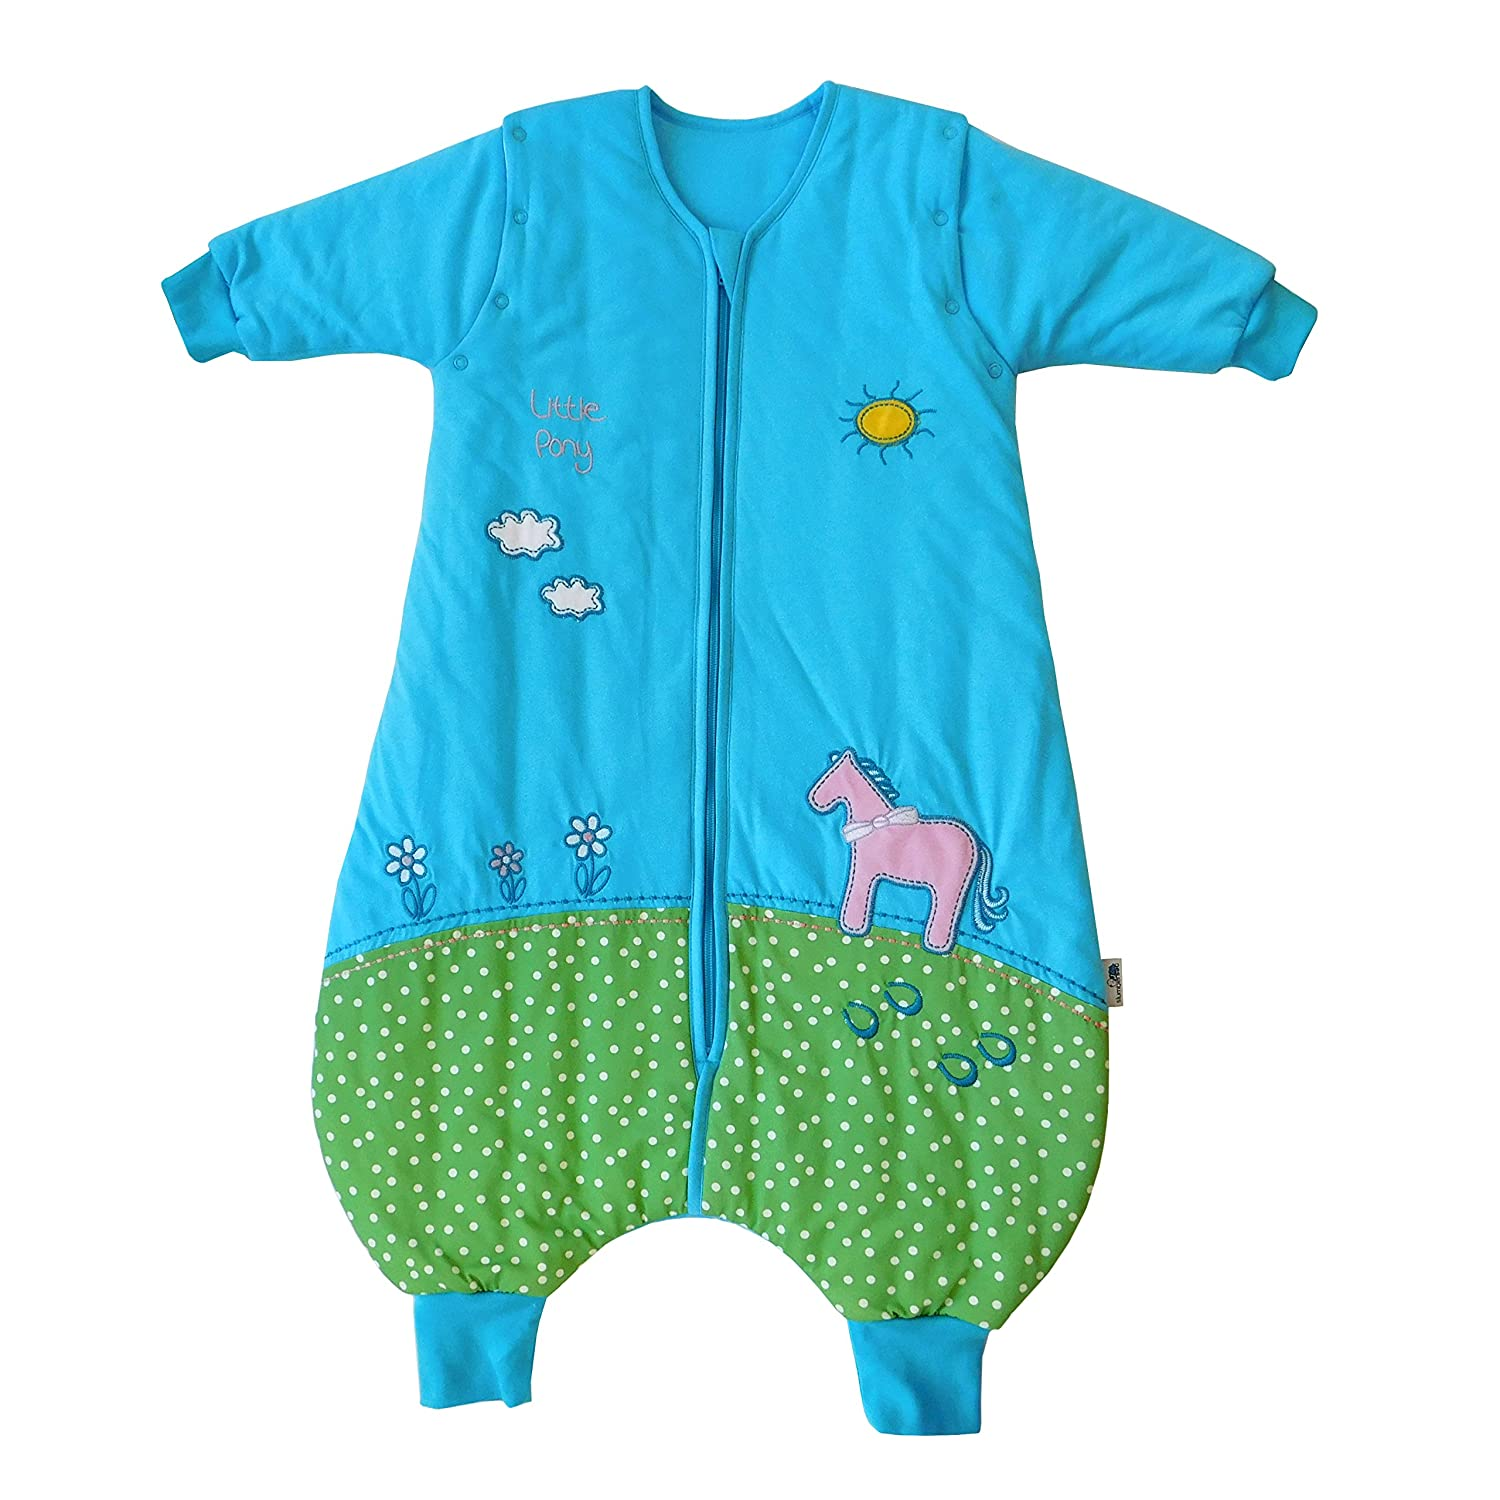 Slumbersac Sleeping Bag with Feet and Removable Long Sleeves, 2.5 Tog - Pony - 24-36 Months/Size: 100 cm